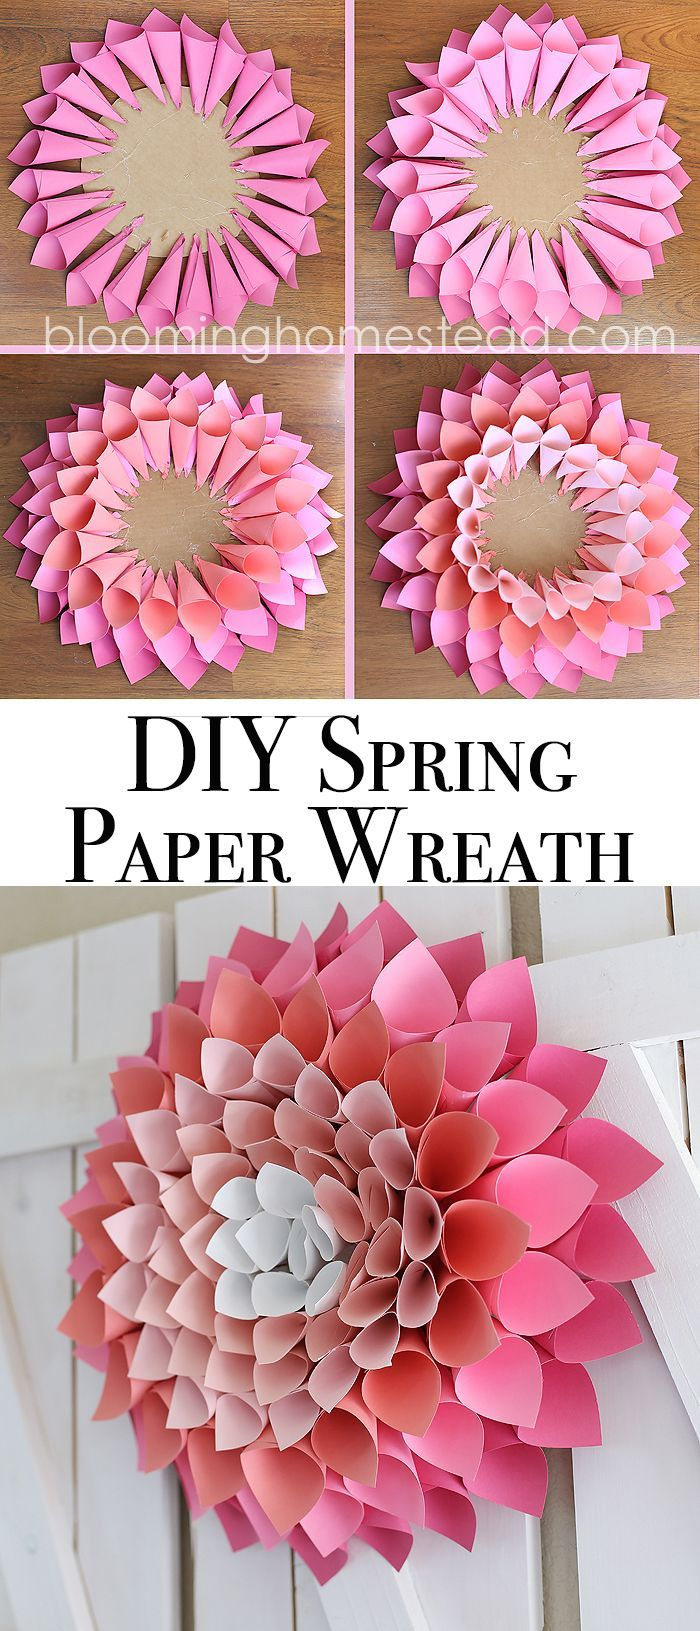 Diy spring wreath page 2 of 2 pinterest diy spring wreath check out this adorable and affordable diy spring wreath tutorialis paper dahlia wreath is so easy to make following this step by step tutorial mightylinksfo